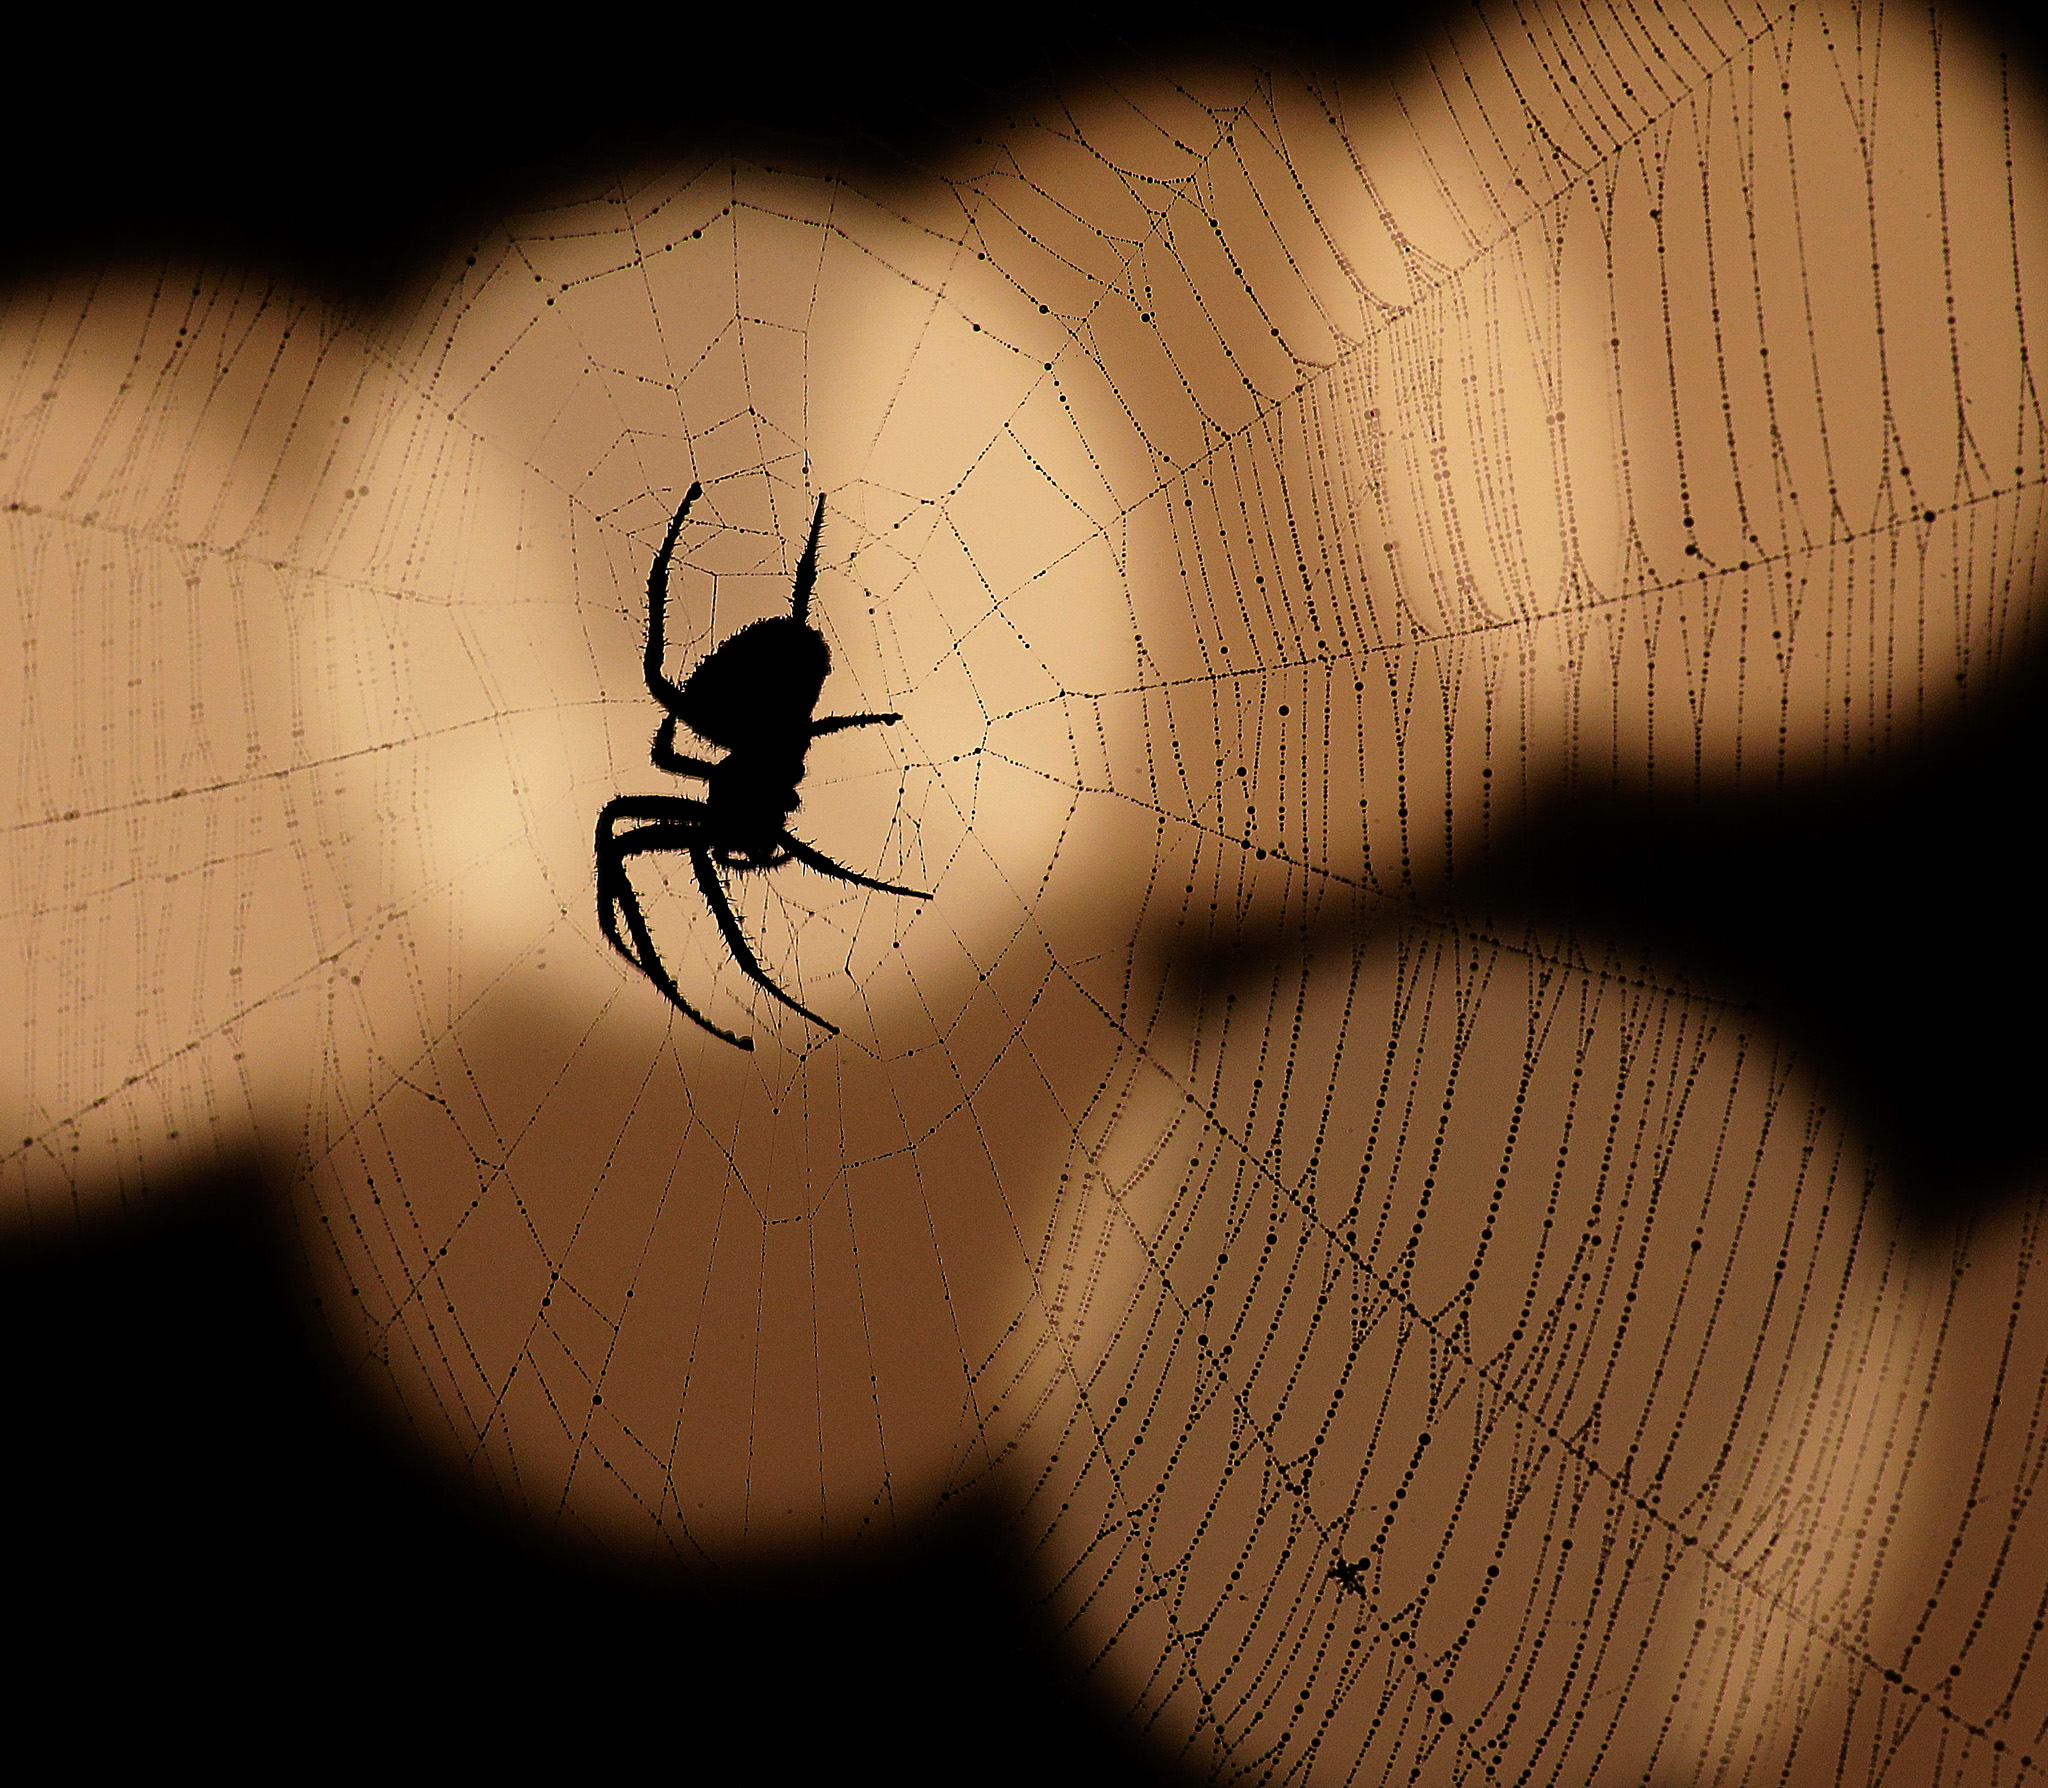 A spider is silhouetted against a string of lights in Overland Park, Kansas.